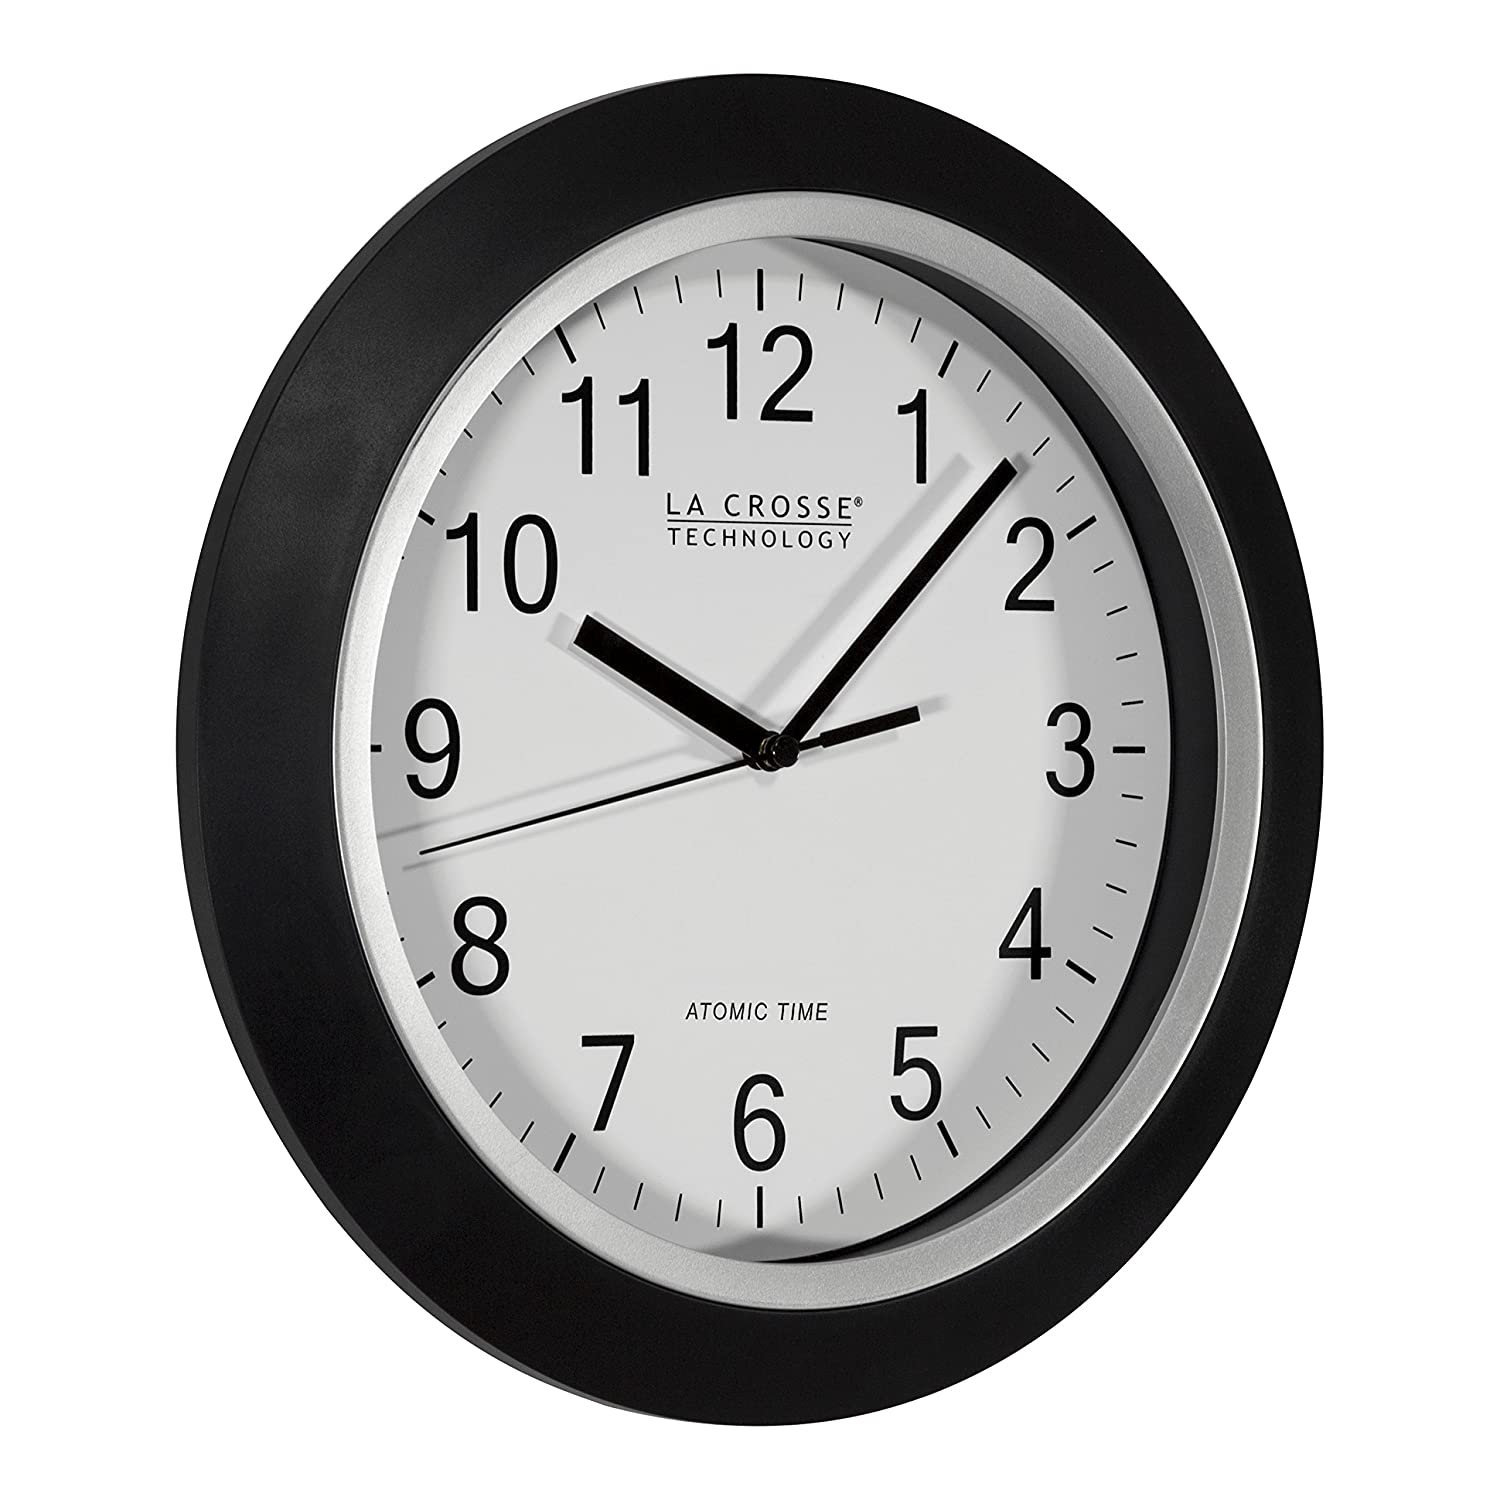 Amazon la crosse technology wt 3129b 12 inch atomic analog amazon la crosse technology wt 3129b 12 inch atomic analog wall clock black home kitchen amipublicfo Image collections